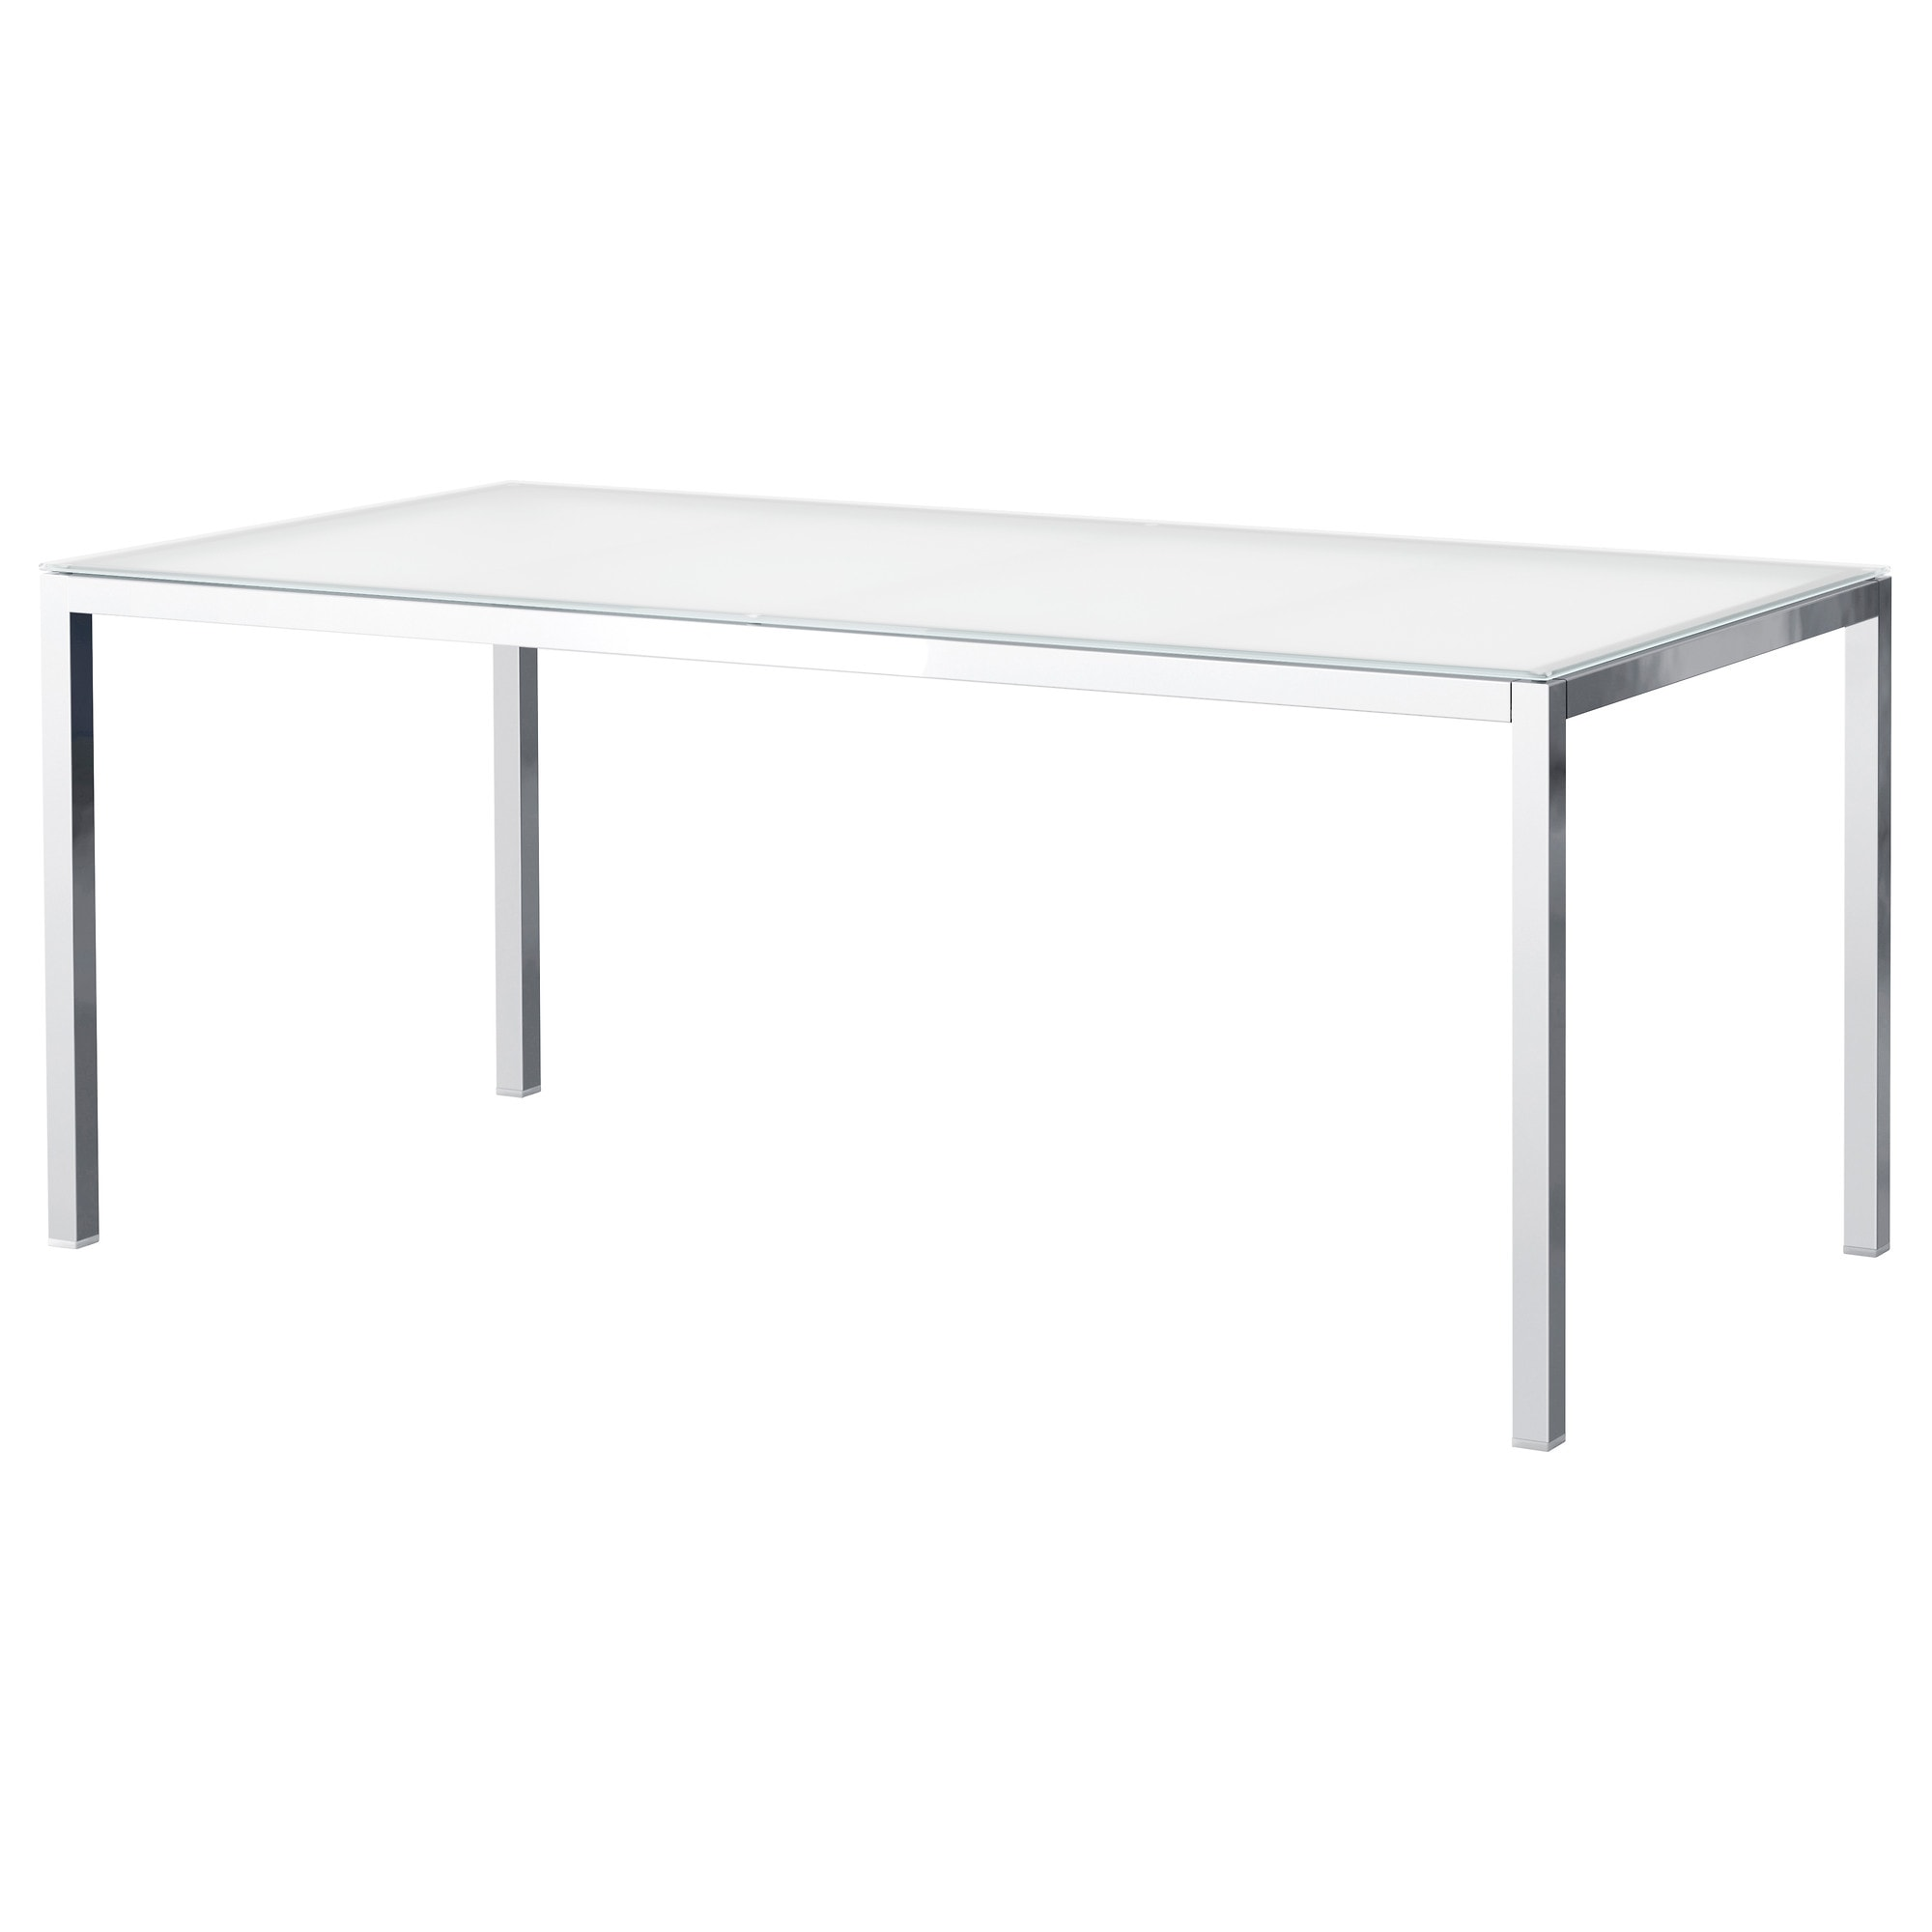 Table ronde plateau verre ikea for Table a manger ikea